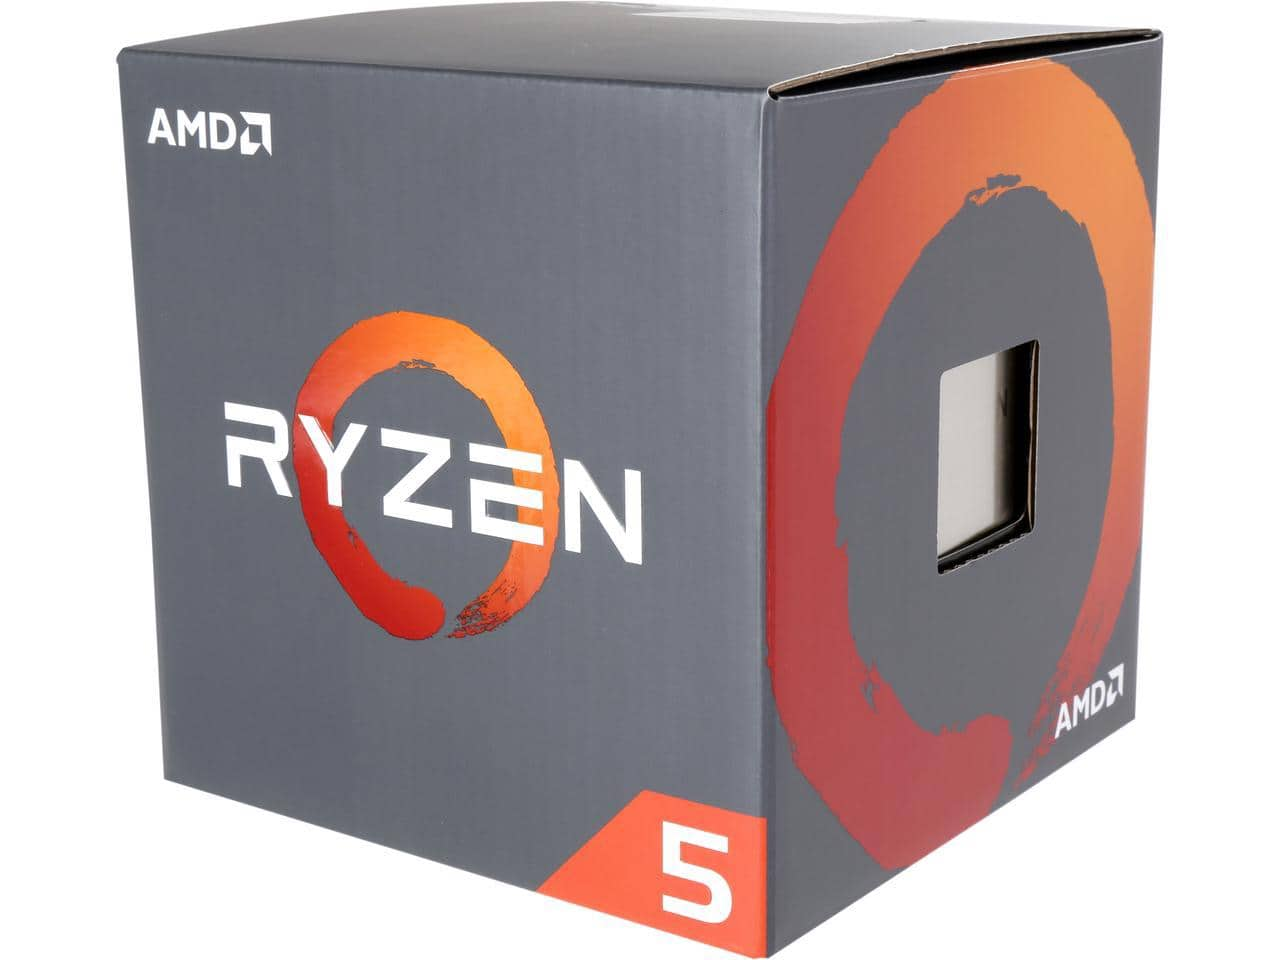 AMD RYZEN 5 1600 6-Core 3.2 GHz (3.6 GHz Turbo) Socket AM4 65W - $30 off with promo $189.99